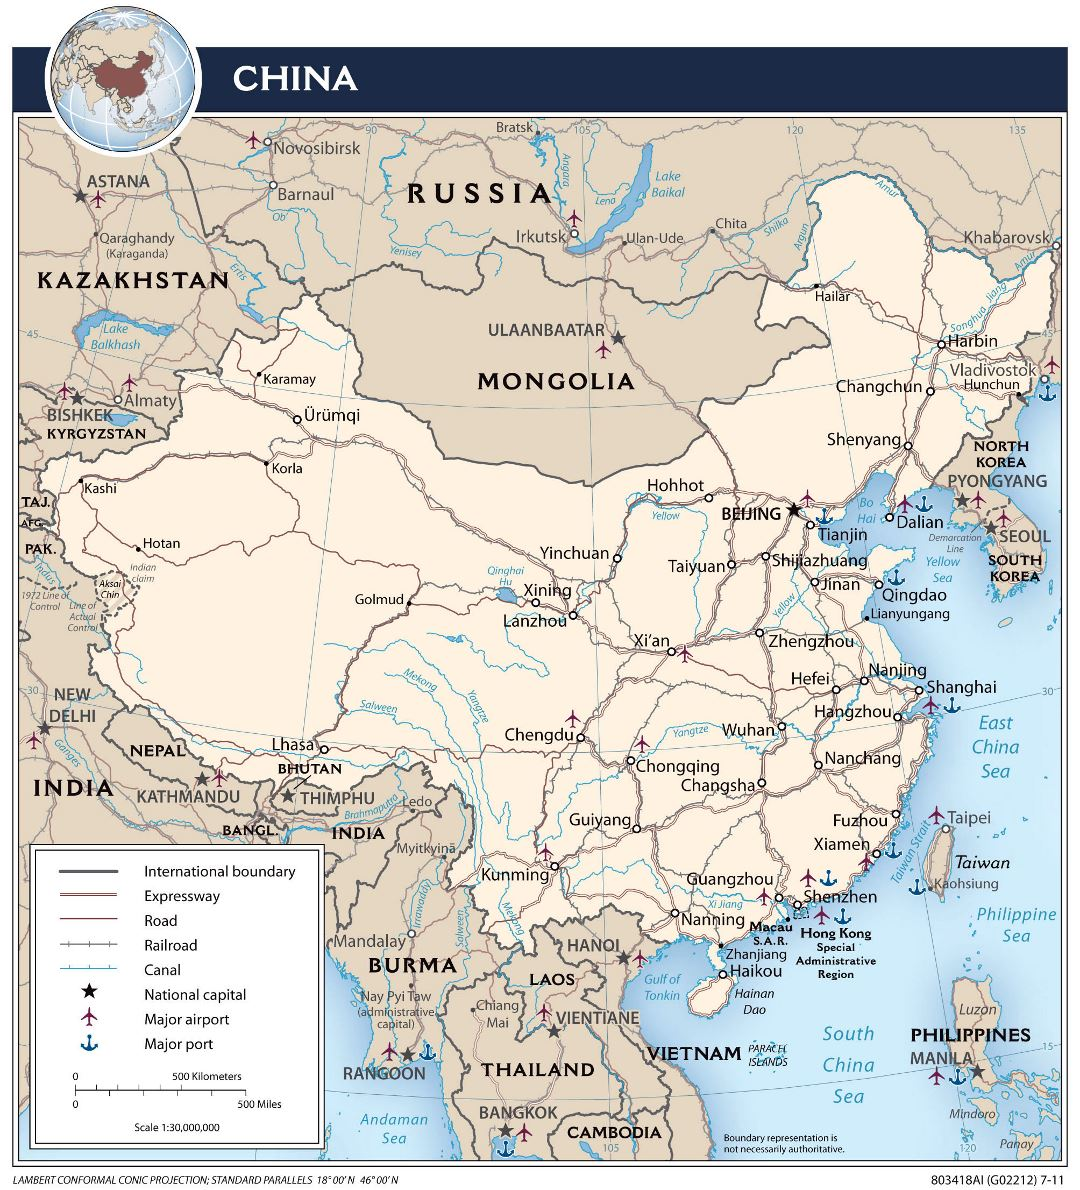 Large detailed political map of China with roads, railroads, major cities, ports, airports and other marks - 2011